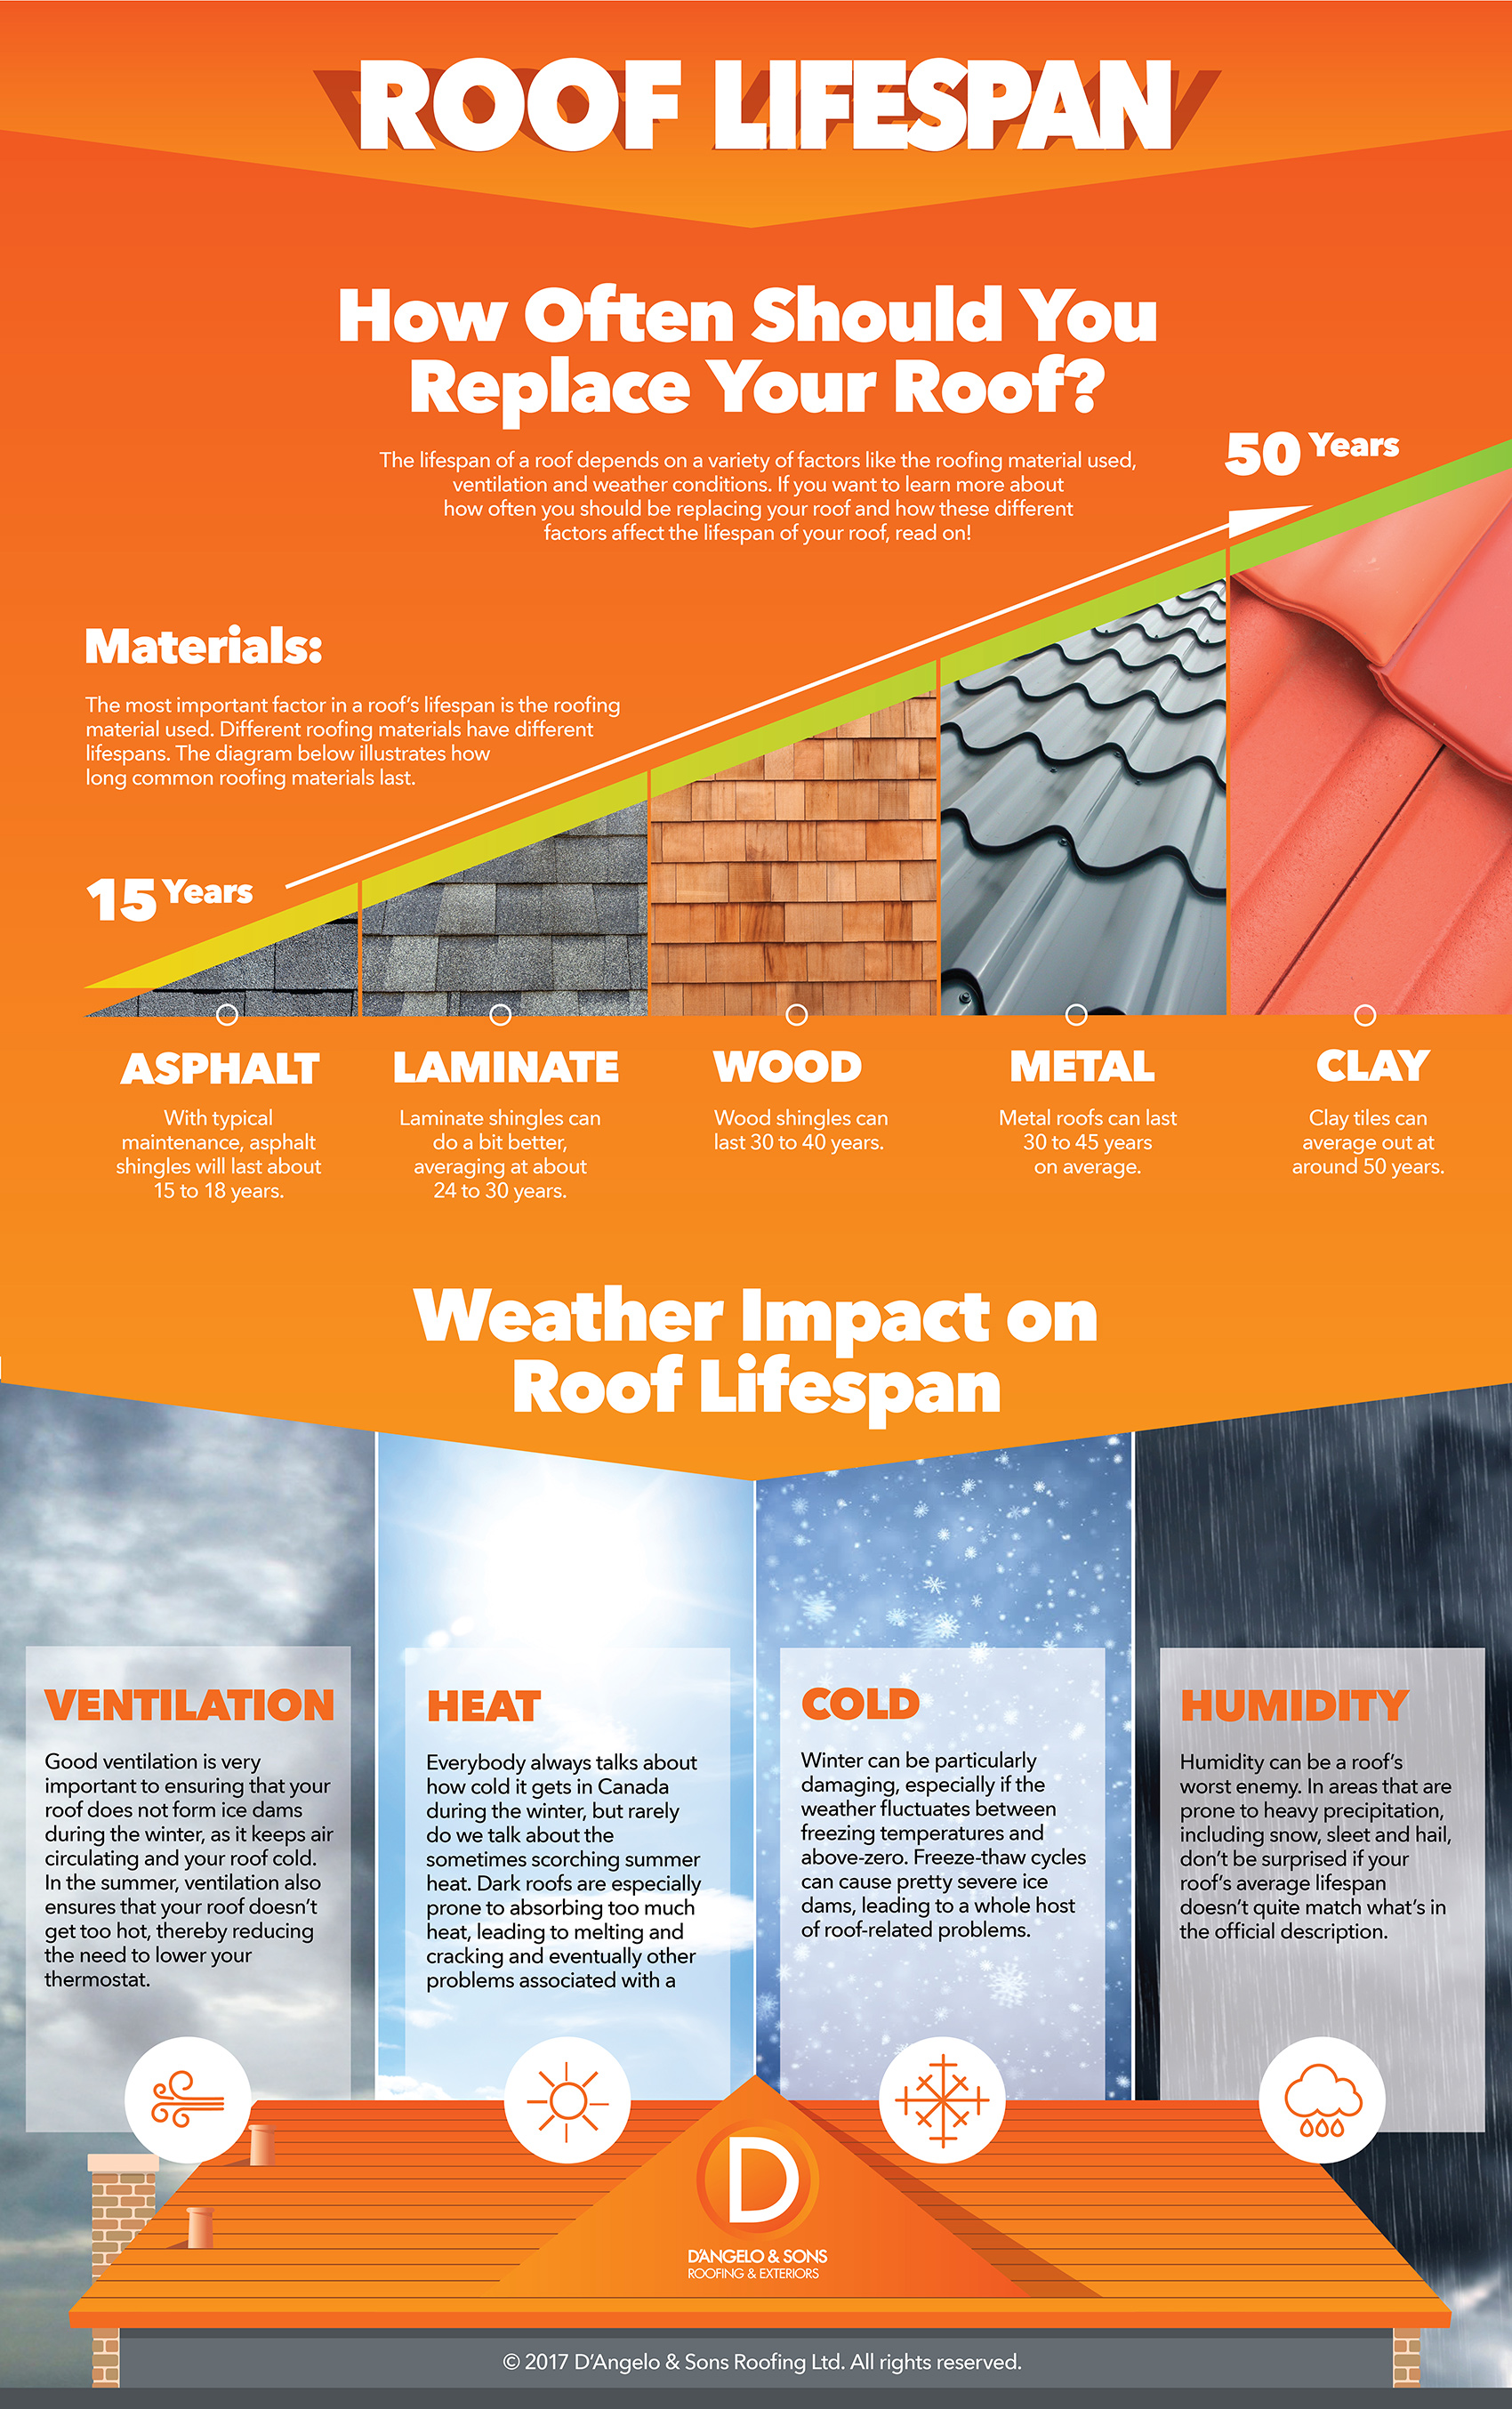 How-often-should-i-replace-roof-infographic